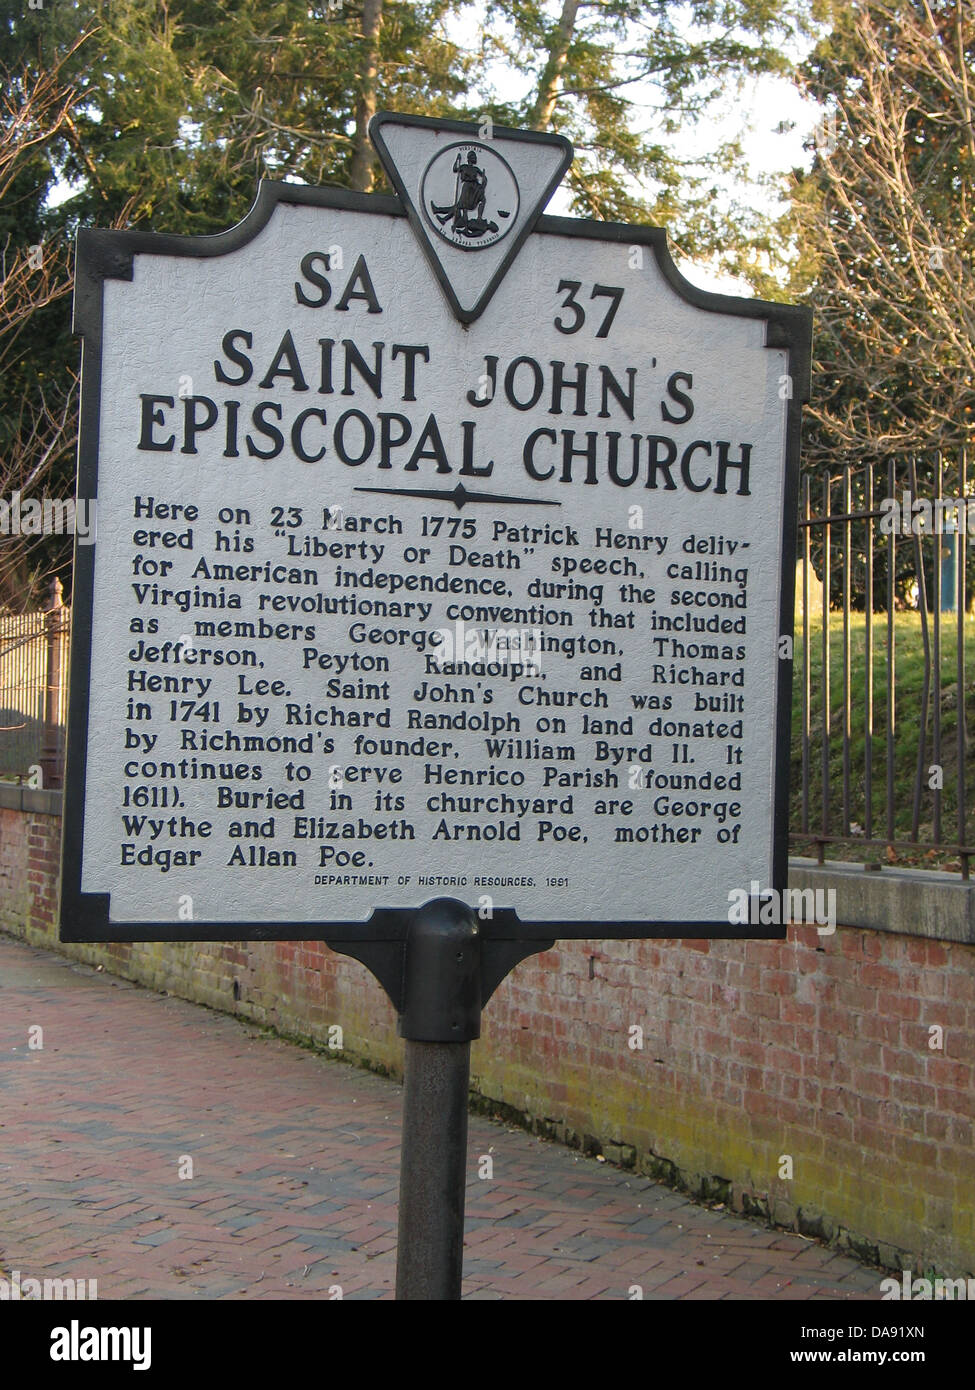 SAINT JOHN'S EPISCOPAL CHURCH Here on 23 March 1775 Patrick Henry delivered his 'Liberty or Death' speech, - Stock Image